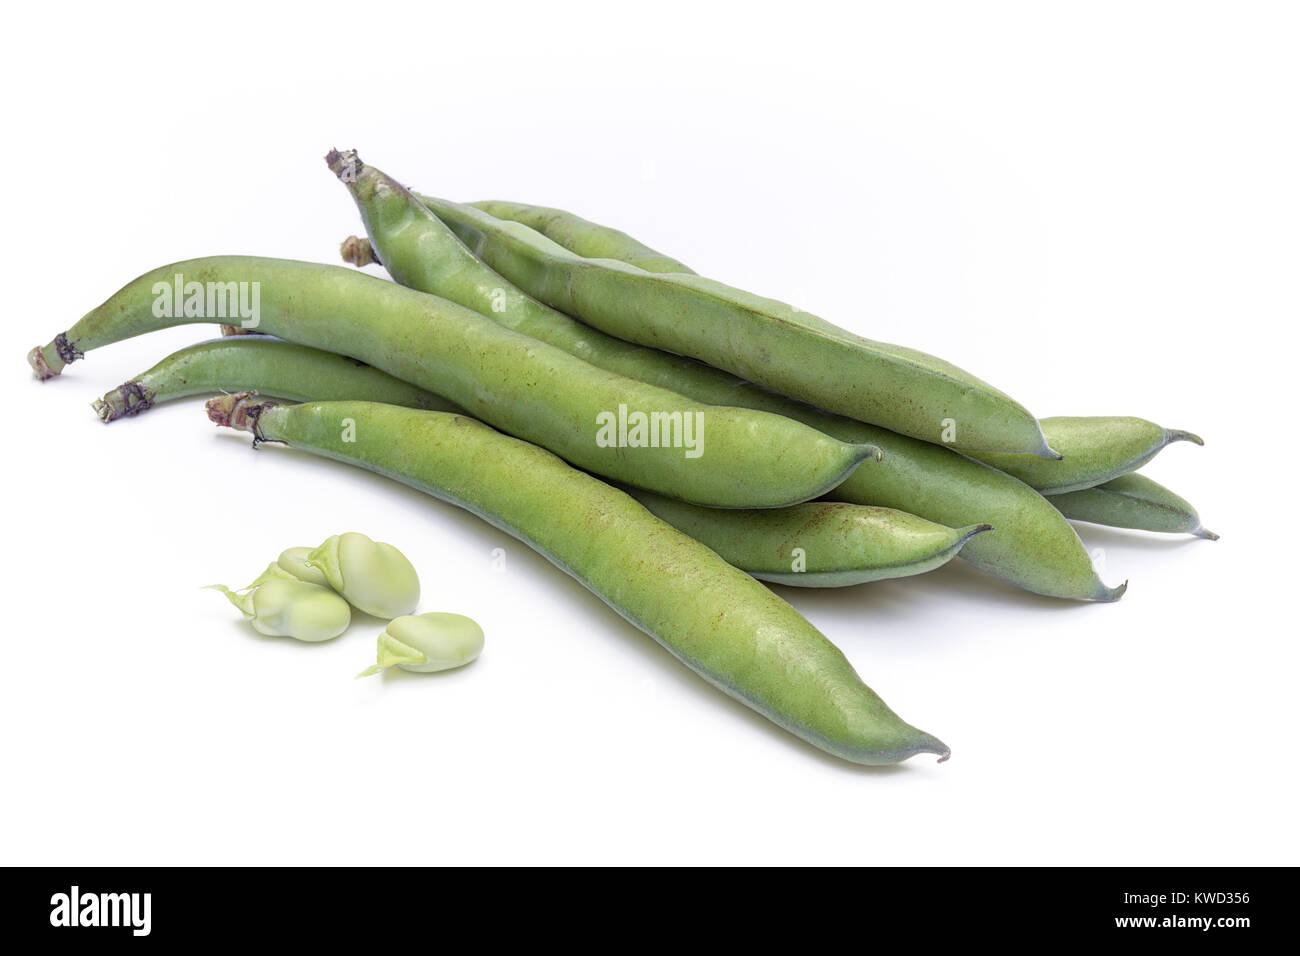 how to cook broad beans in pods